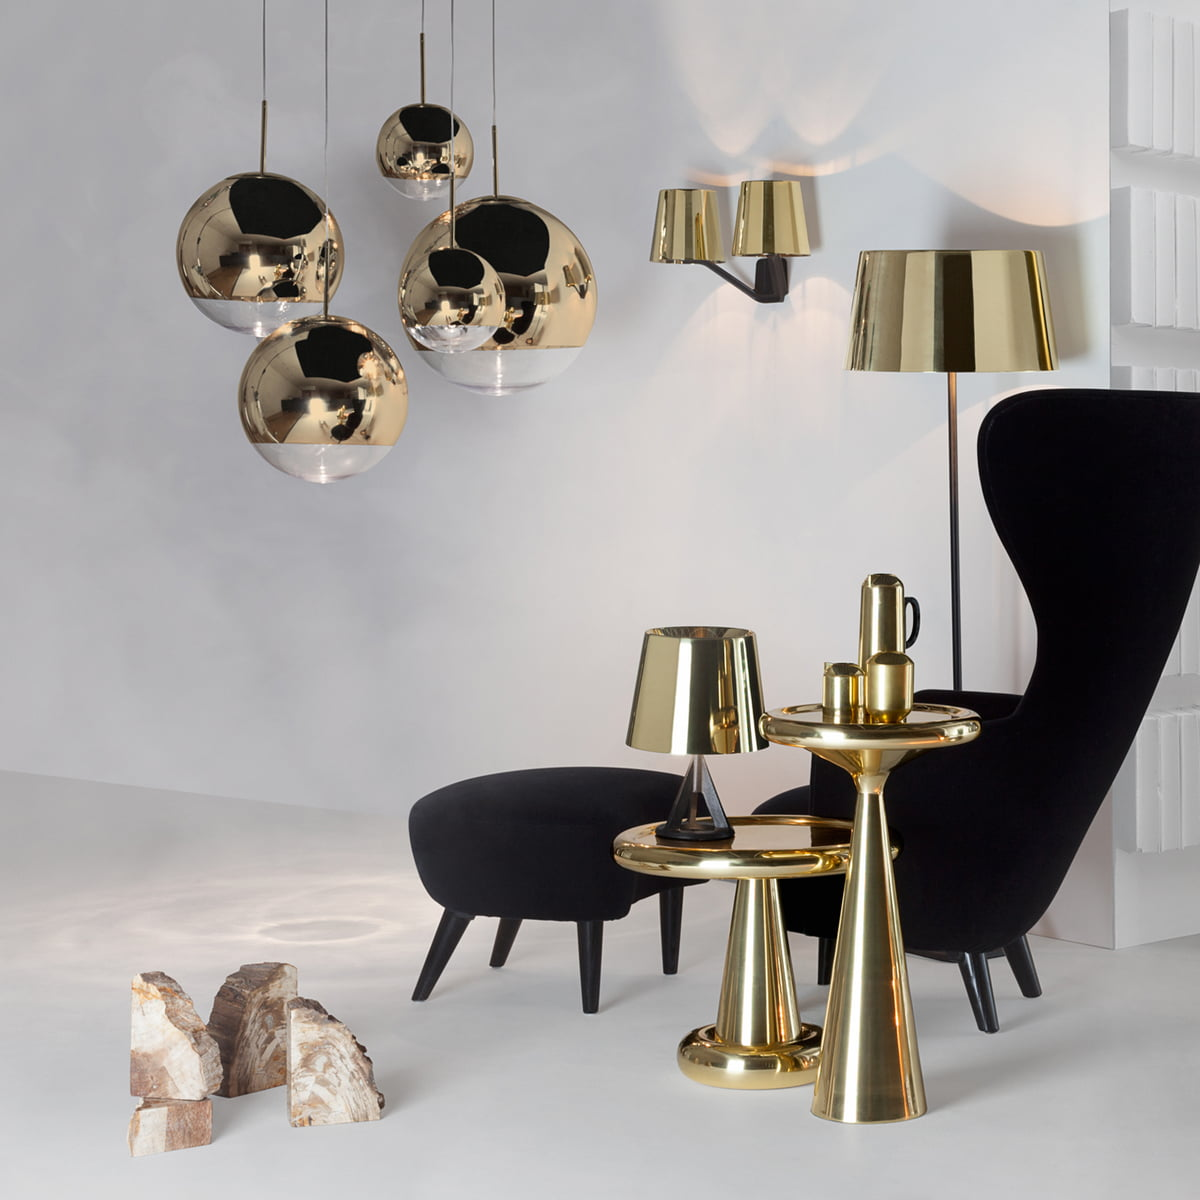 Lumineuse Tom Ball Dixon Gold Mini 25 Mirror Cm Suspension Ø yOmN80vnwP